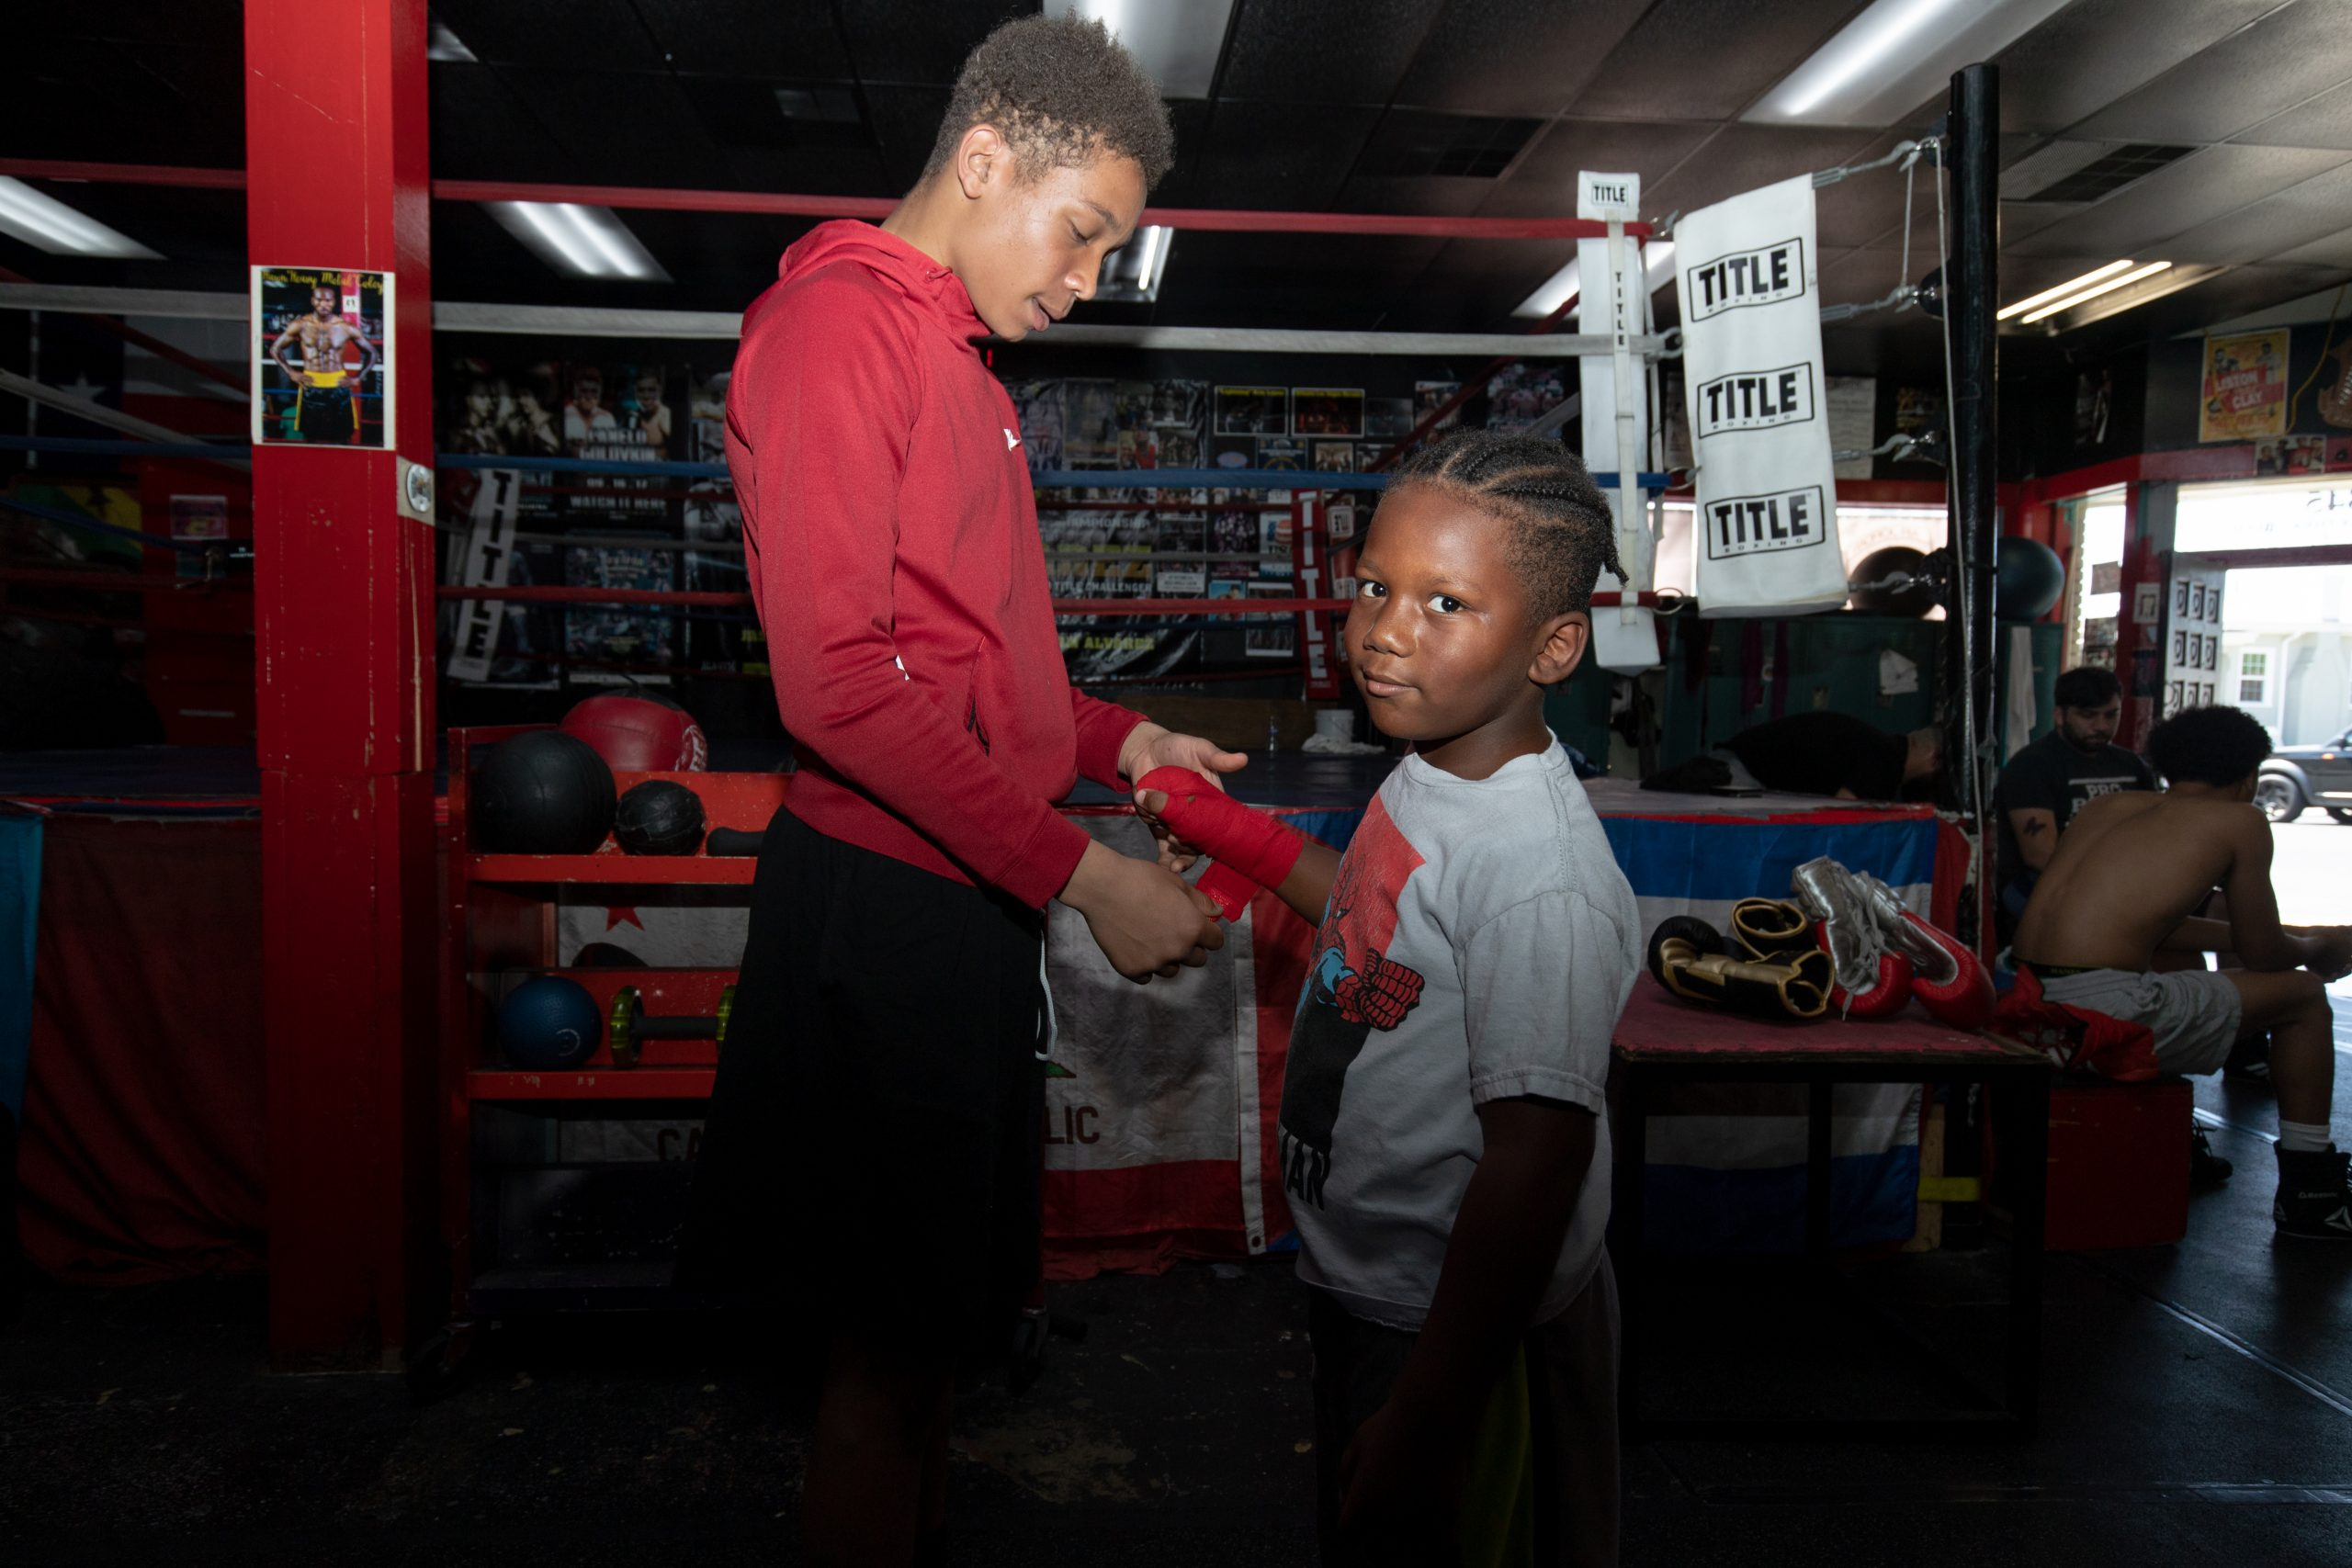 Youth help each other put on boxing gloves before they practice together.